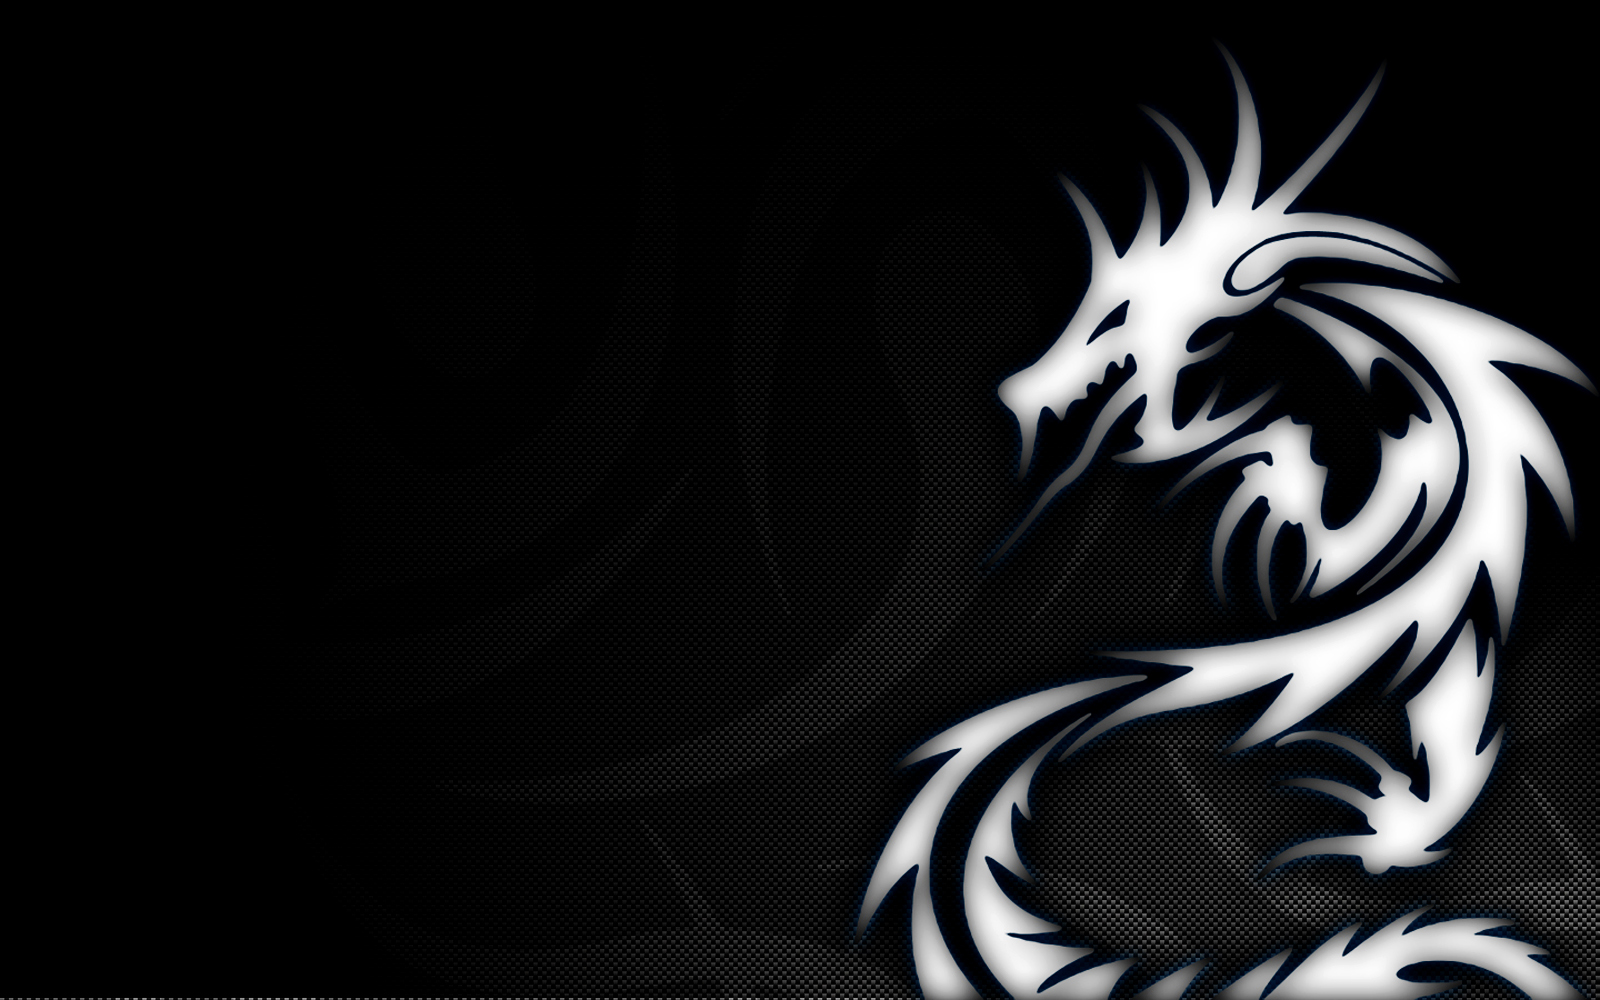 Dragon Logo Designs HD Wallpapers Download Wallpapers in HD 1600x1000